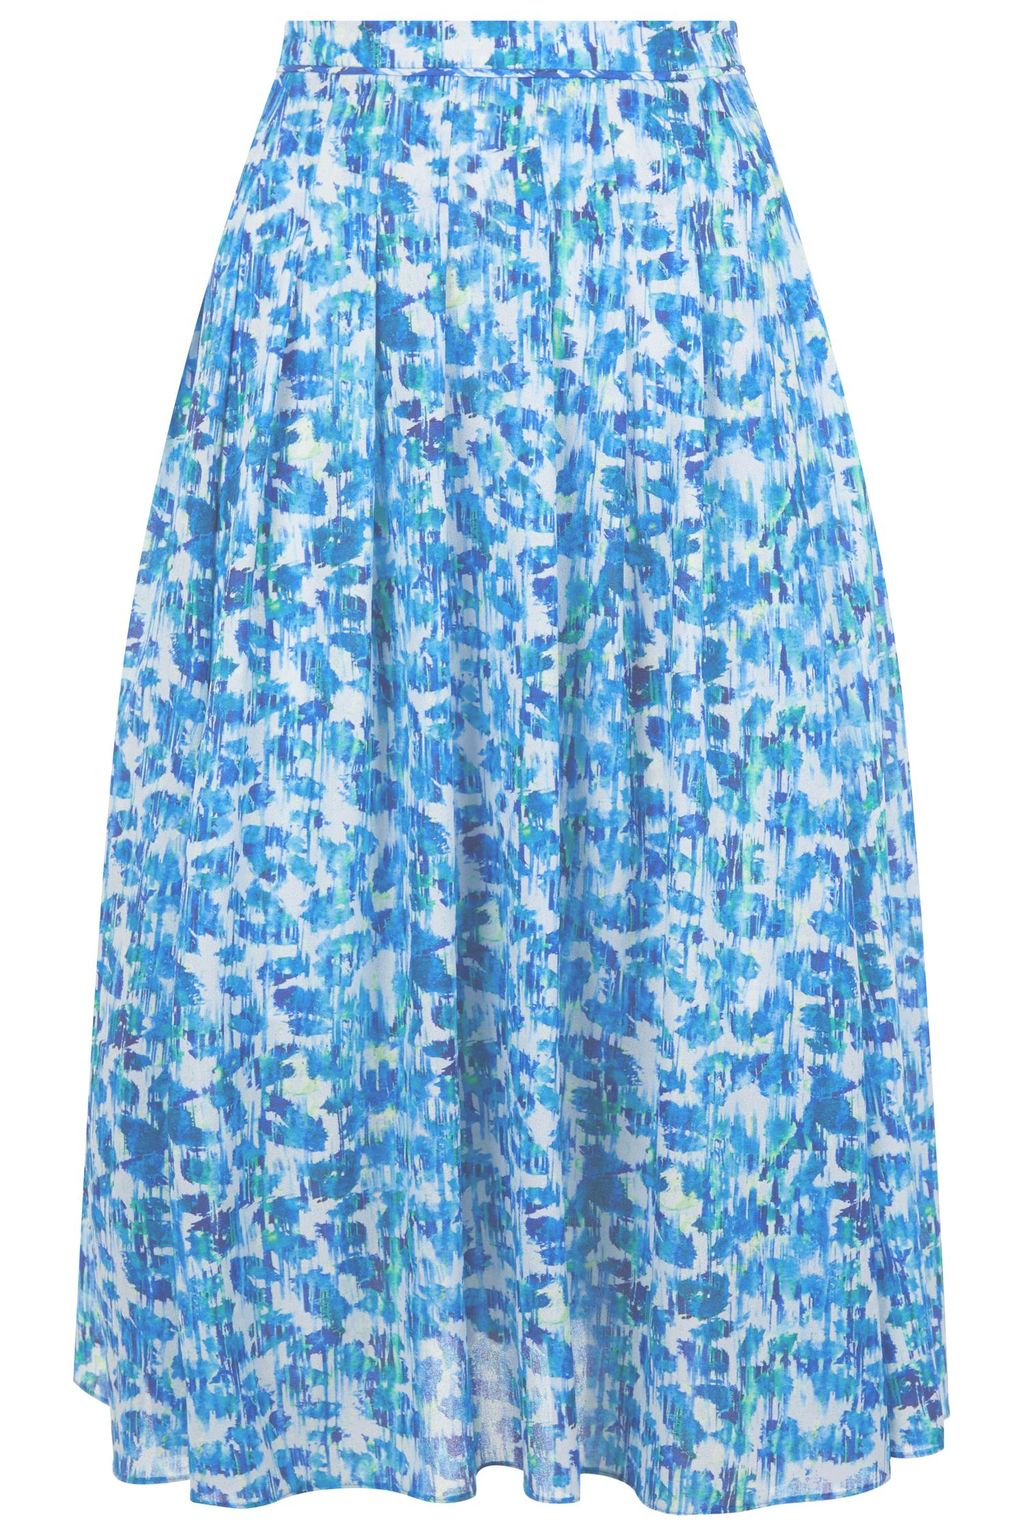 Benson Skirt, Multi Coloured - length: below the knee; style: full/prom skirt; fit: loose/voluminous; waist: mid/regular rise; predominant colour: ivory/cream; secondary colour: diva blue; occasions: casual; fibres: polyester/polyamide - 100%; pattern type: fabric; pattern: florals; texture group: other - light to midweight; multicoloured: multicoloured; season: s/s 2016; wardrobe: highlight